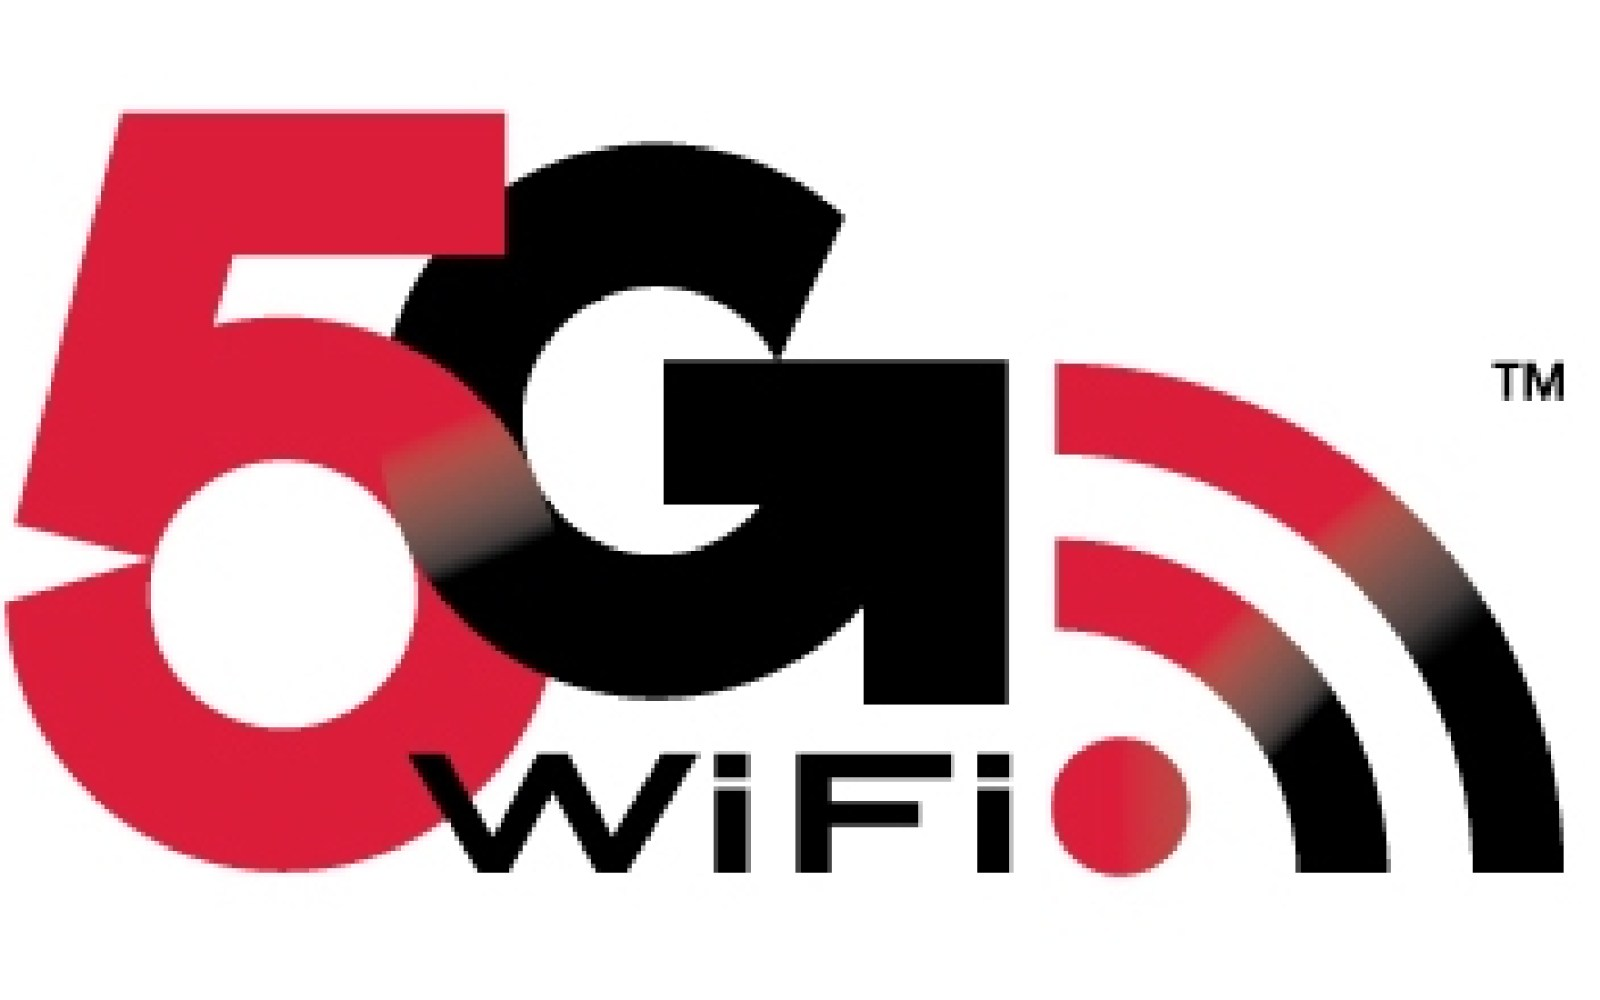 New Broadcom 5G 802.11ac WiFi chip will likely power future iOS devices